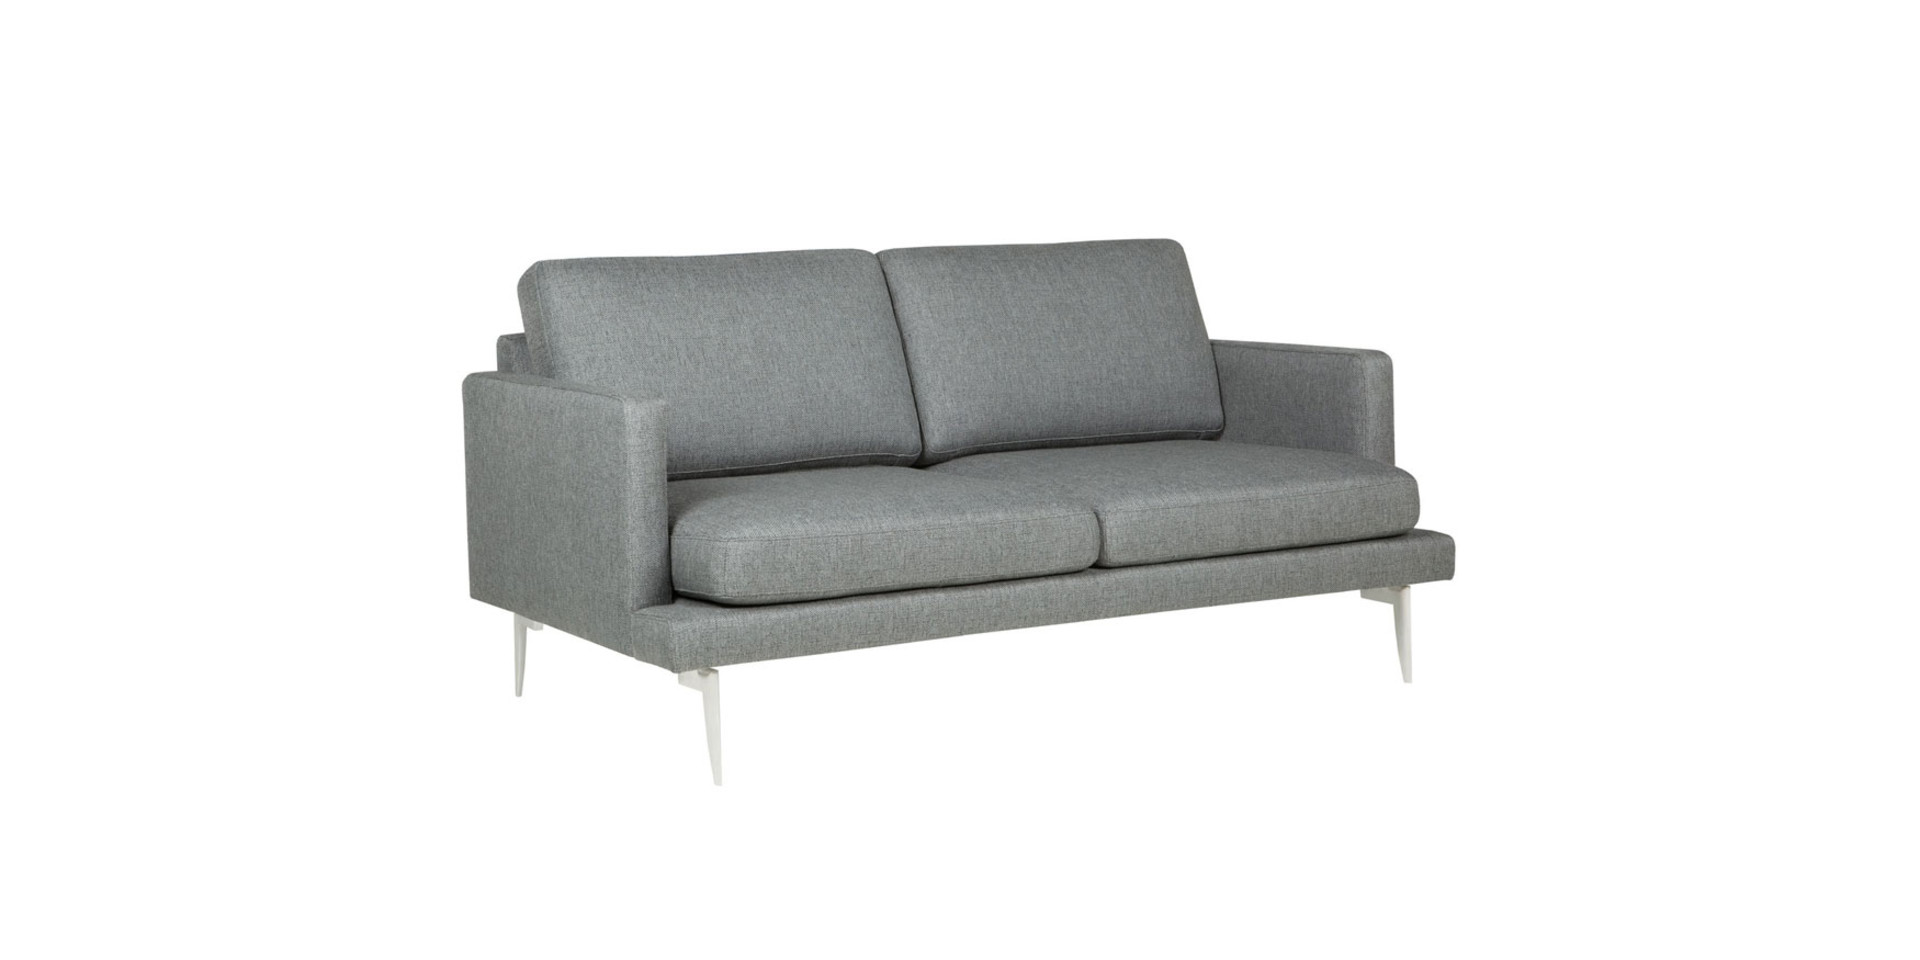 sits-ludvig-canape-2seater_nancy6_dark_grey_2